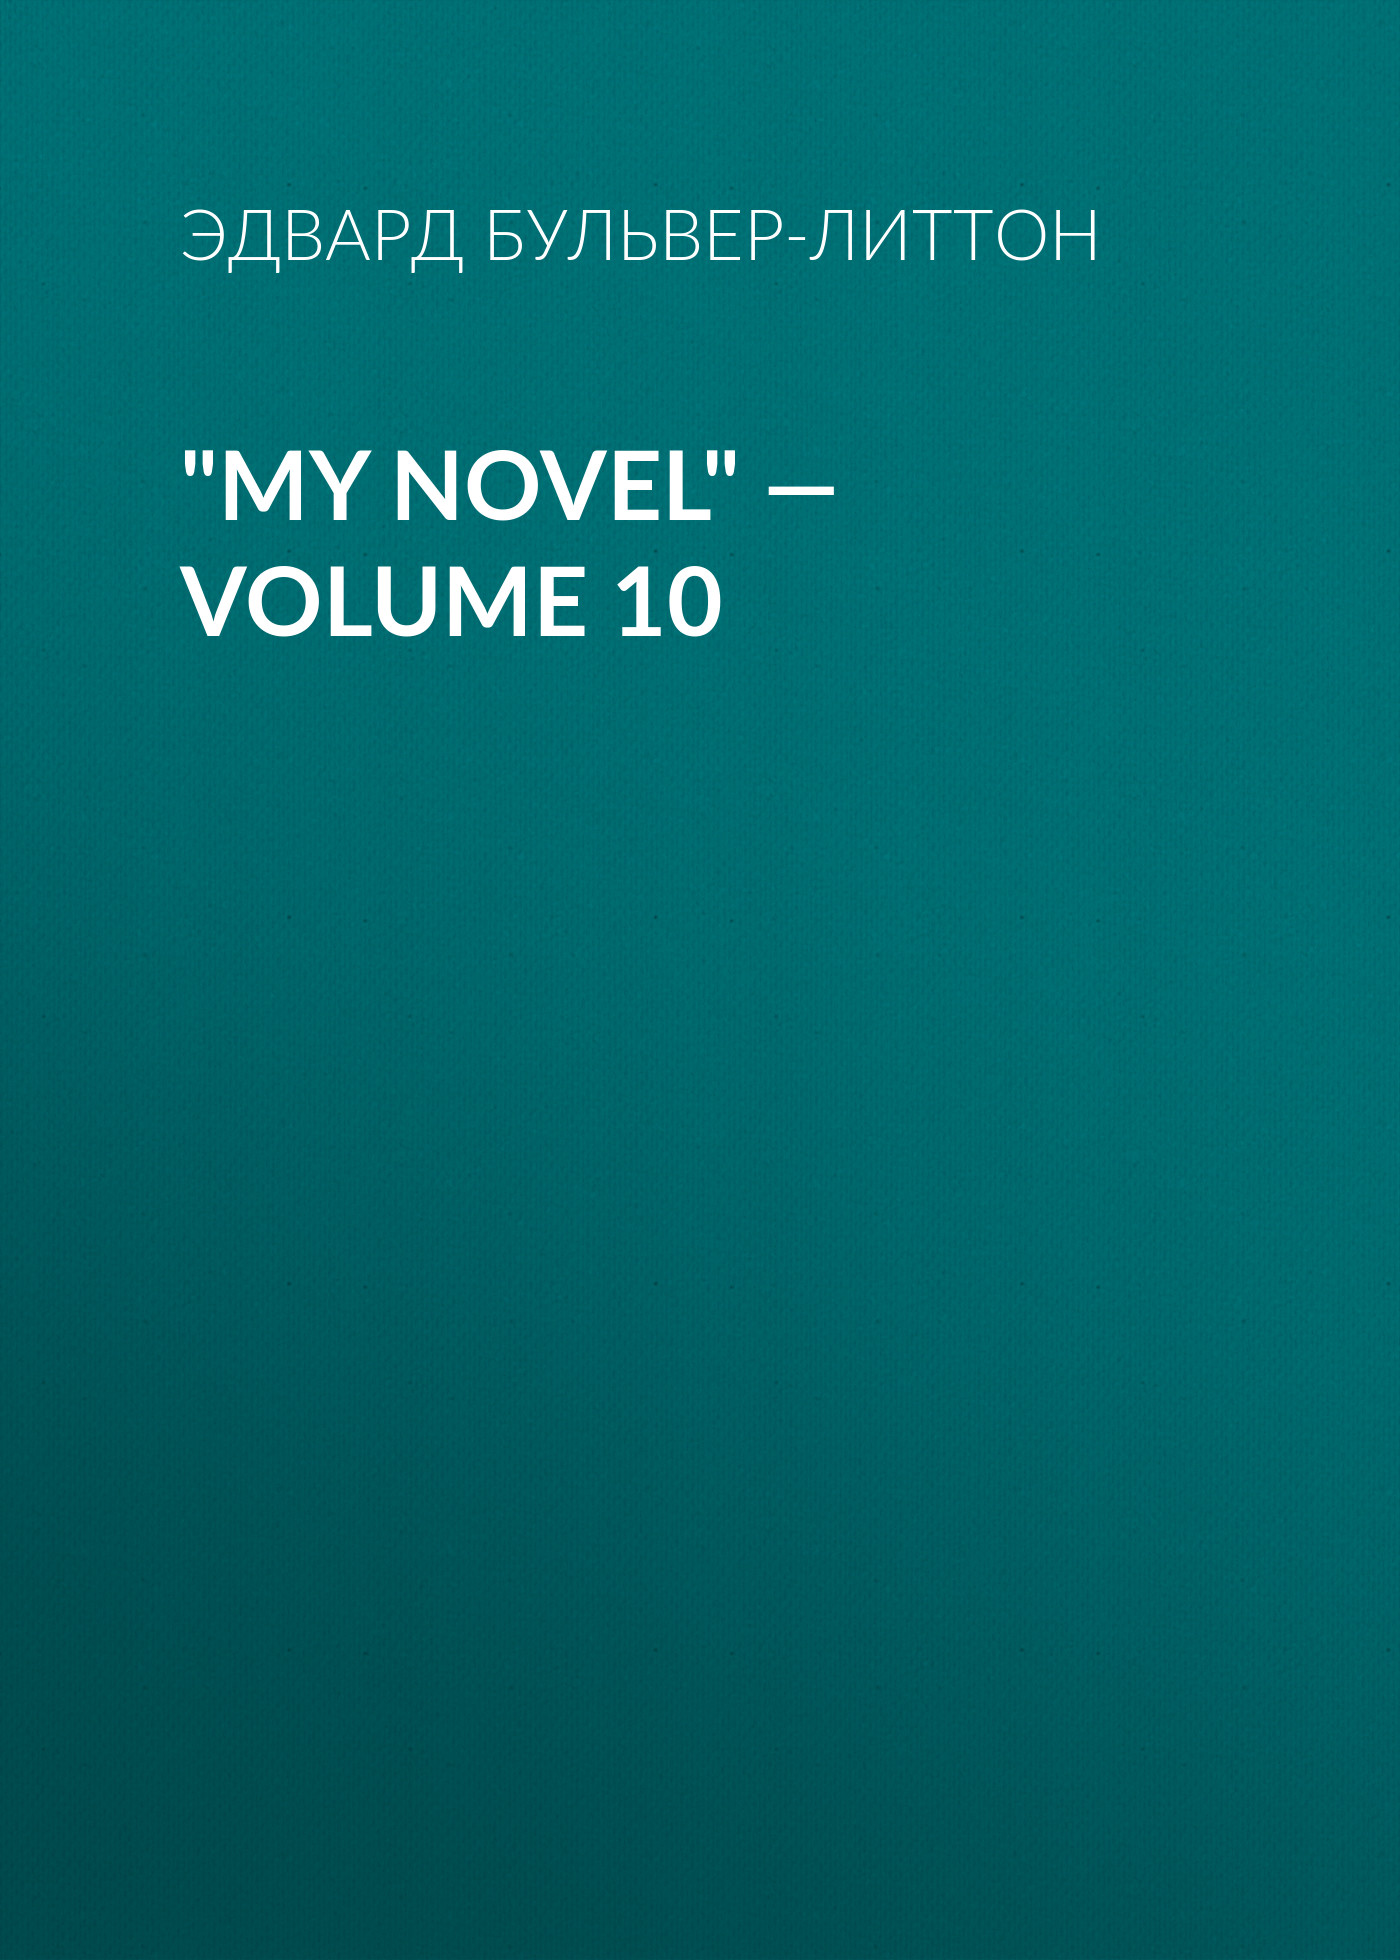 Эдвард Бульвер-Литтон My Novel — Volume 10 эдвард бульвер литтон my novel volume 05